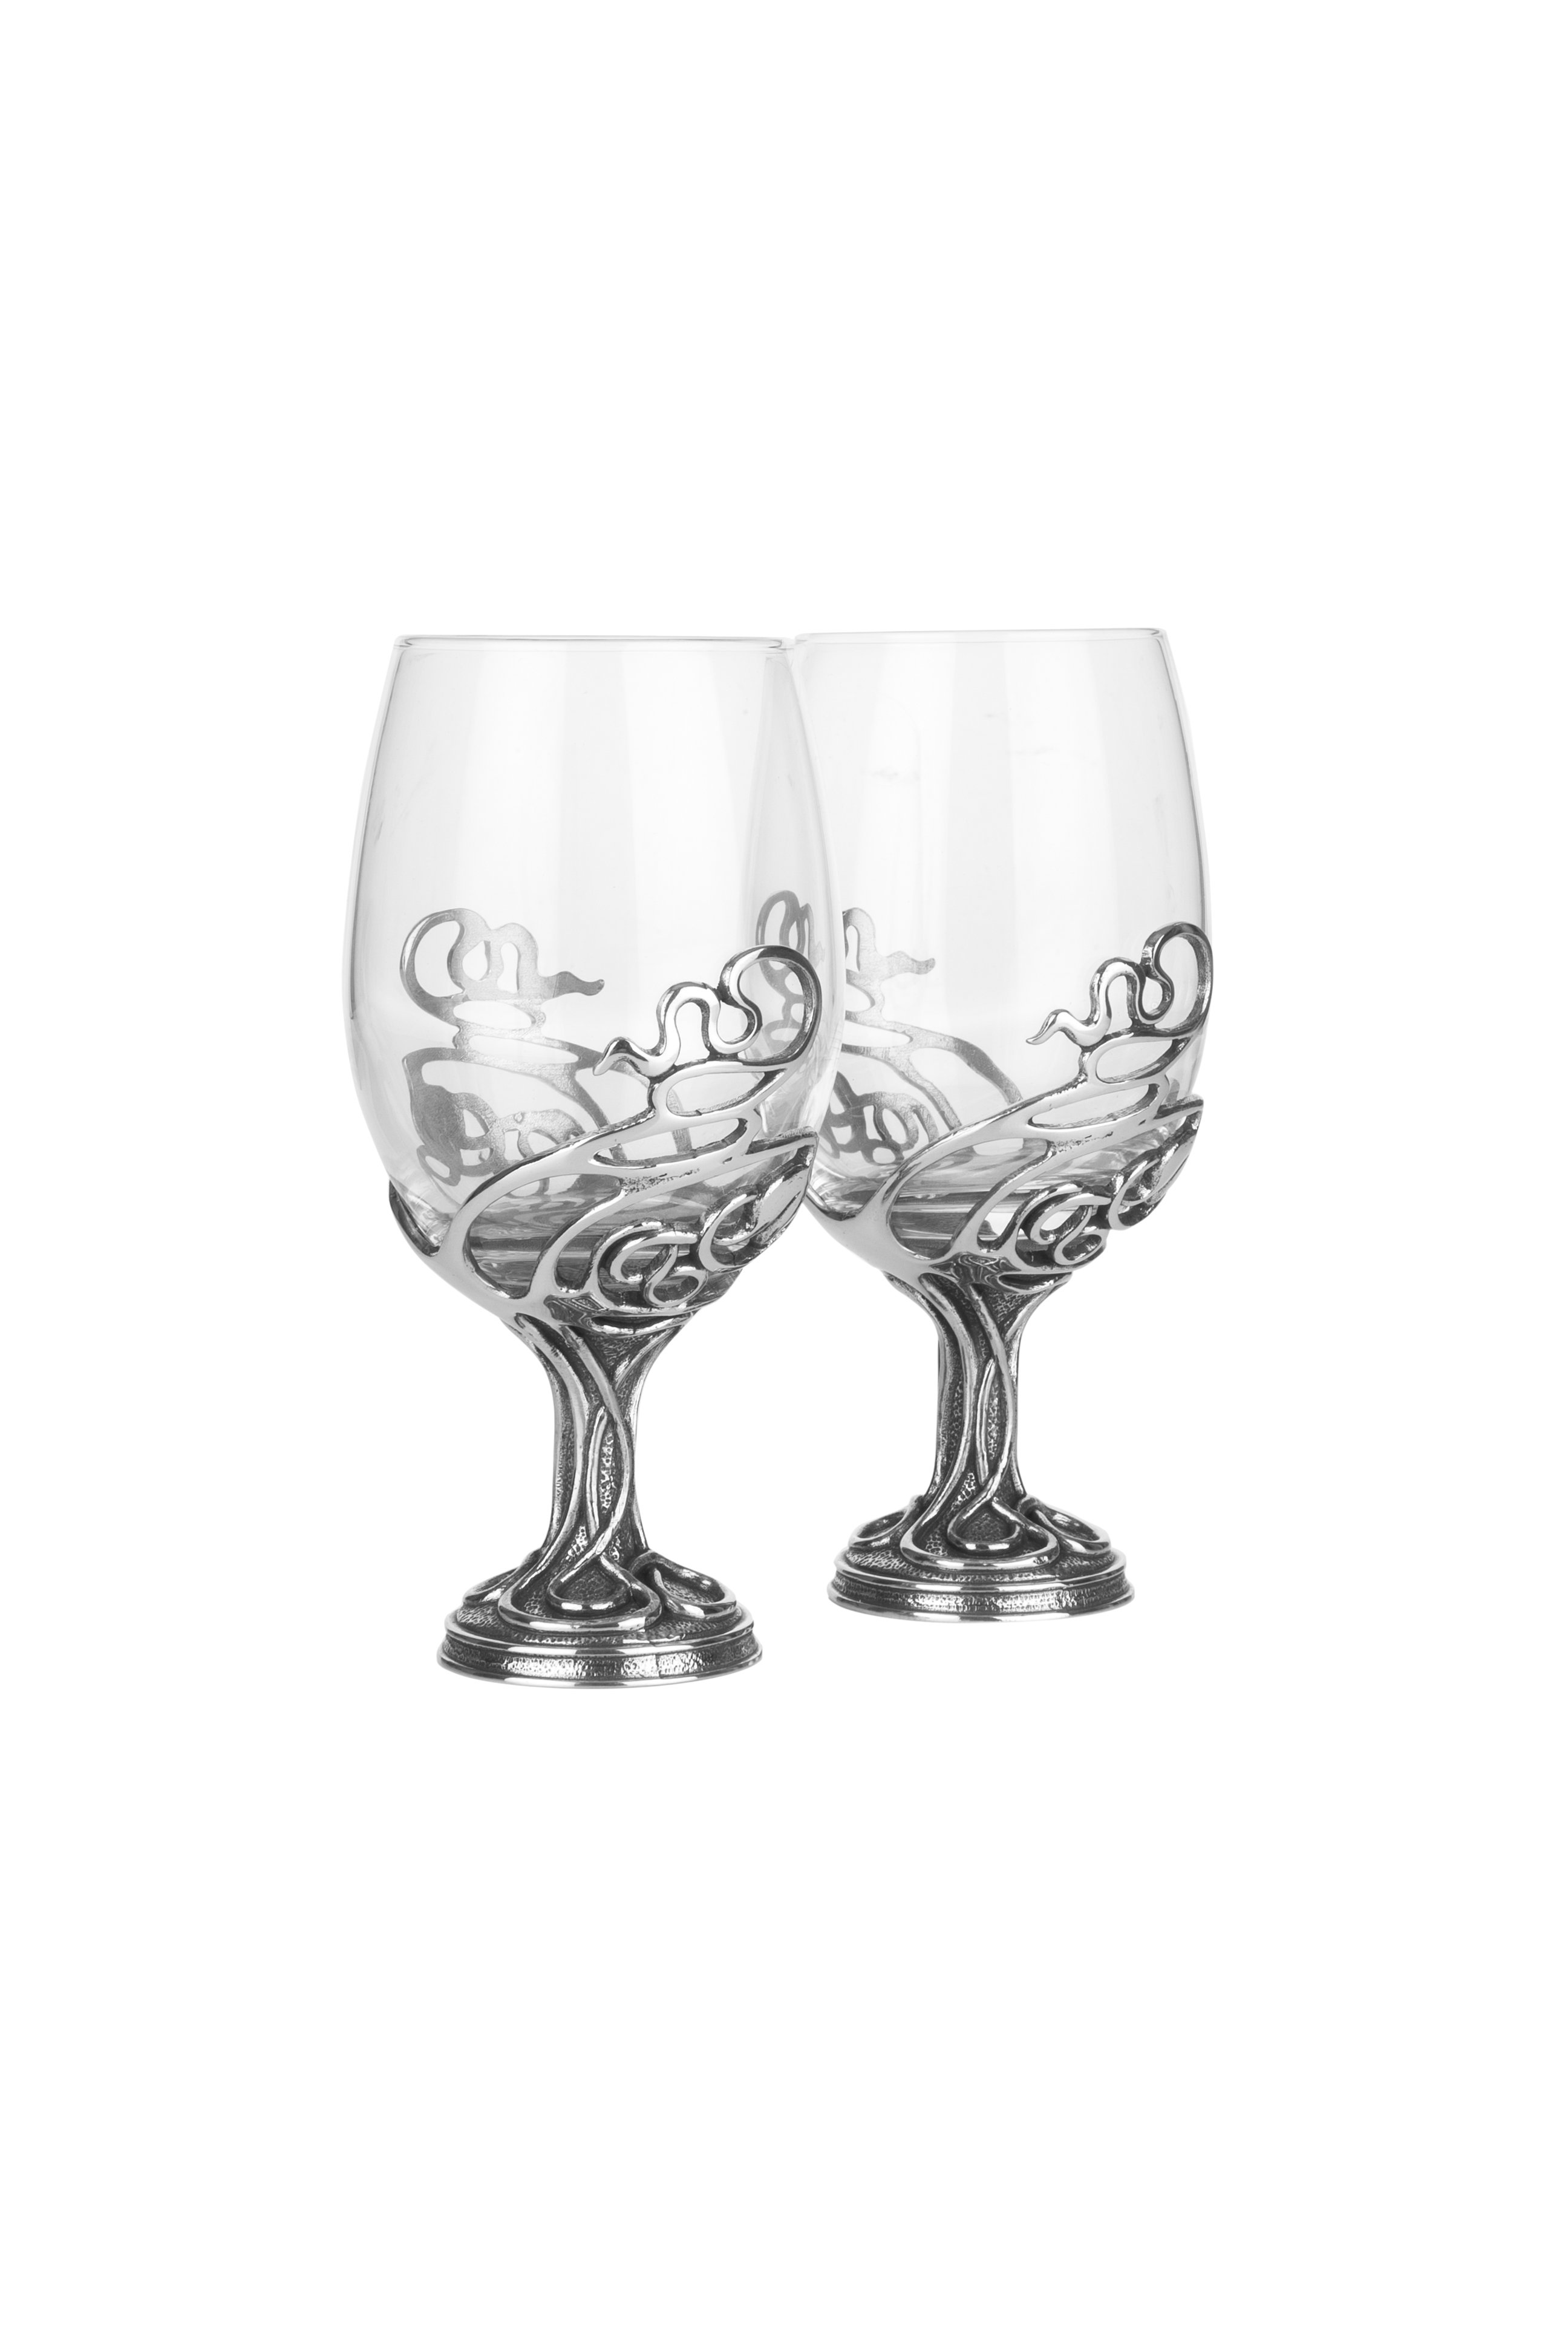 Swirl Wine Glass Design Glass Pair from A E Williams WINE02